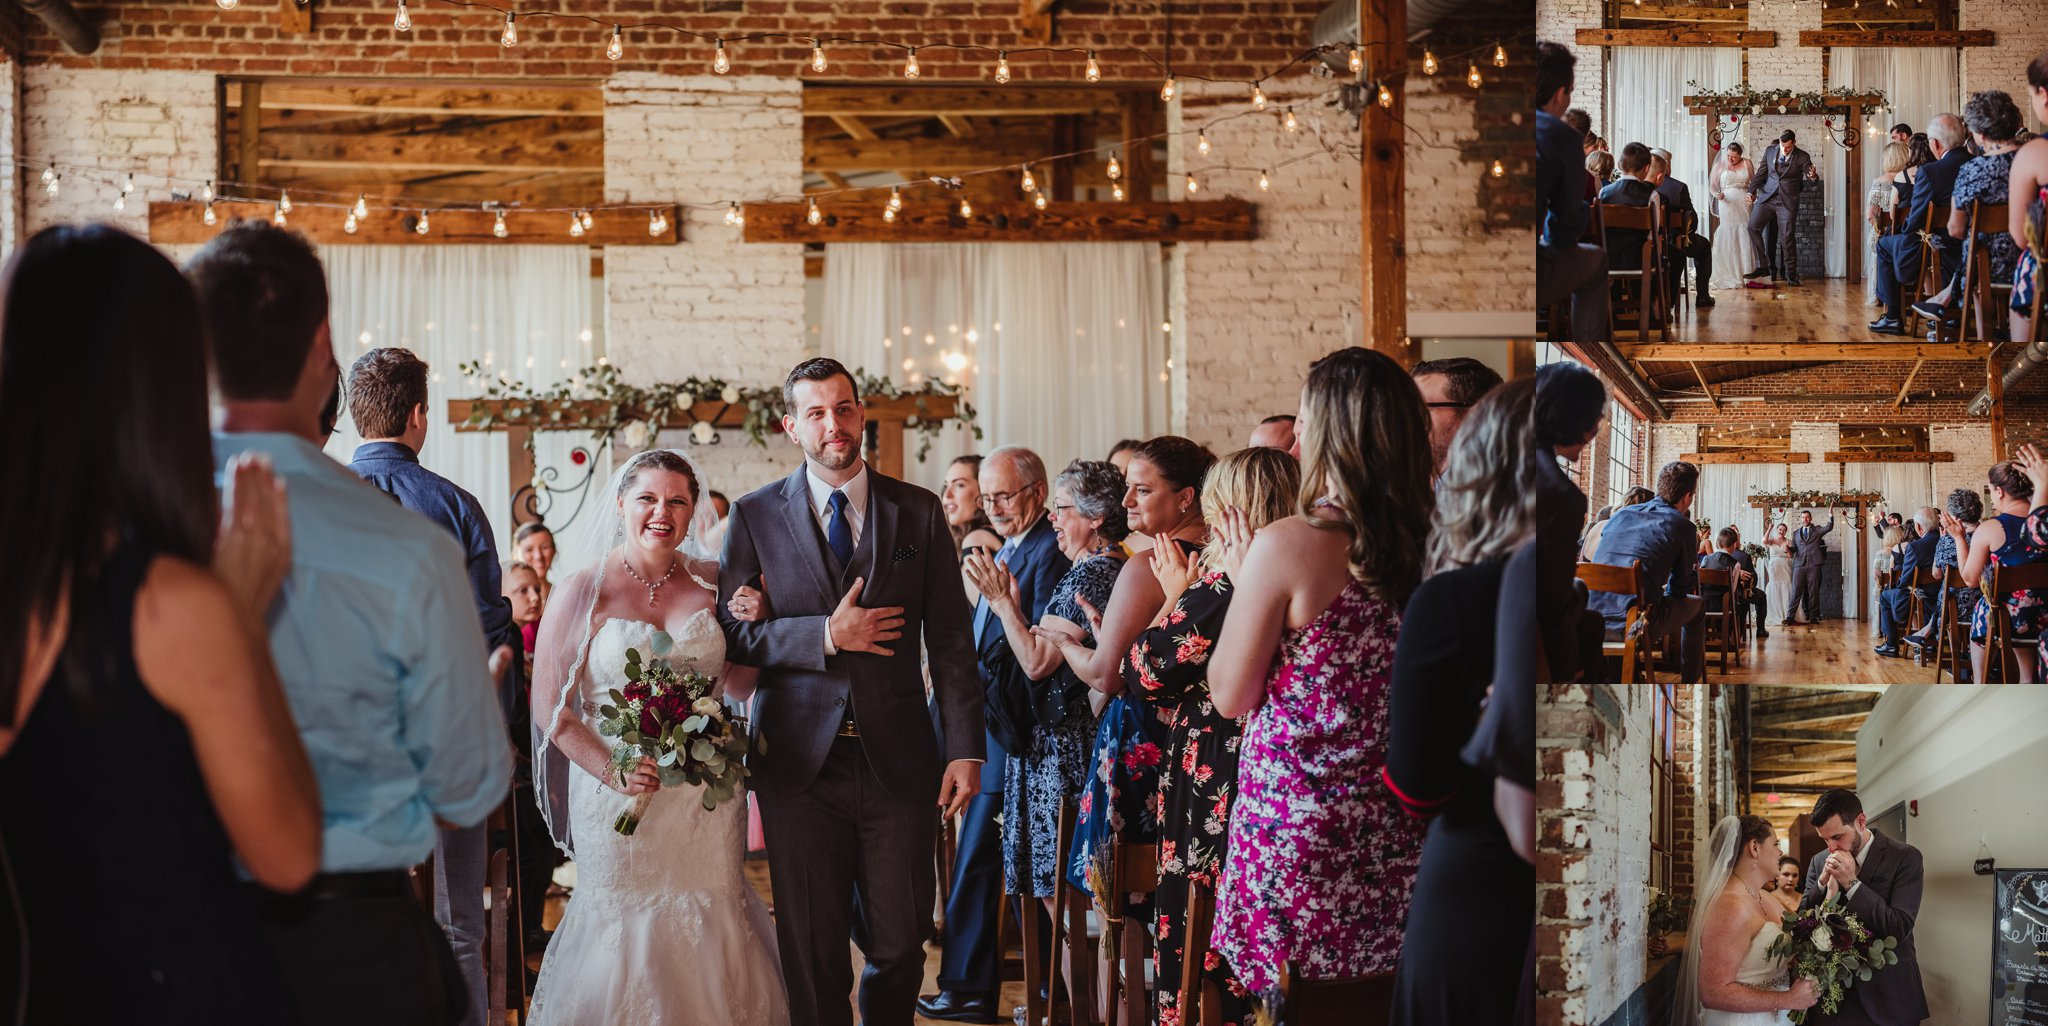 The bride and groom smash the glass and walk down the aisle after their wedding ceremony in Raleigh, North Carolina, pictures by Rose Trail Images.